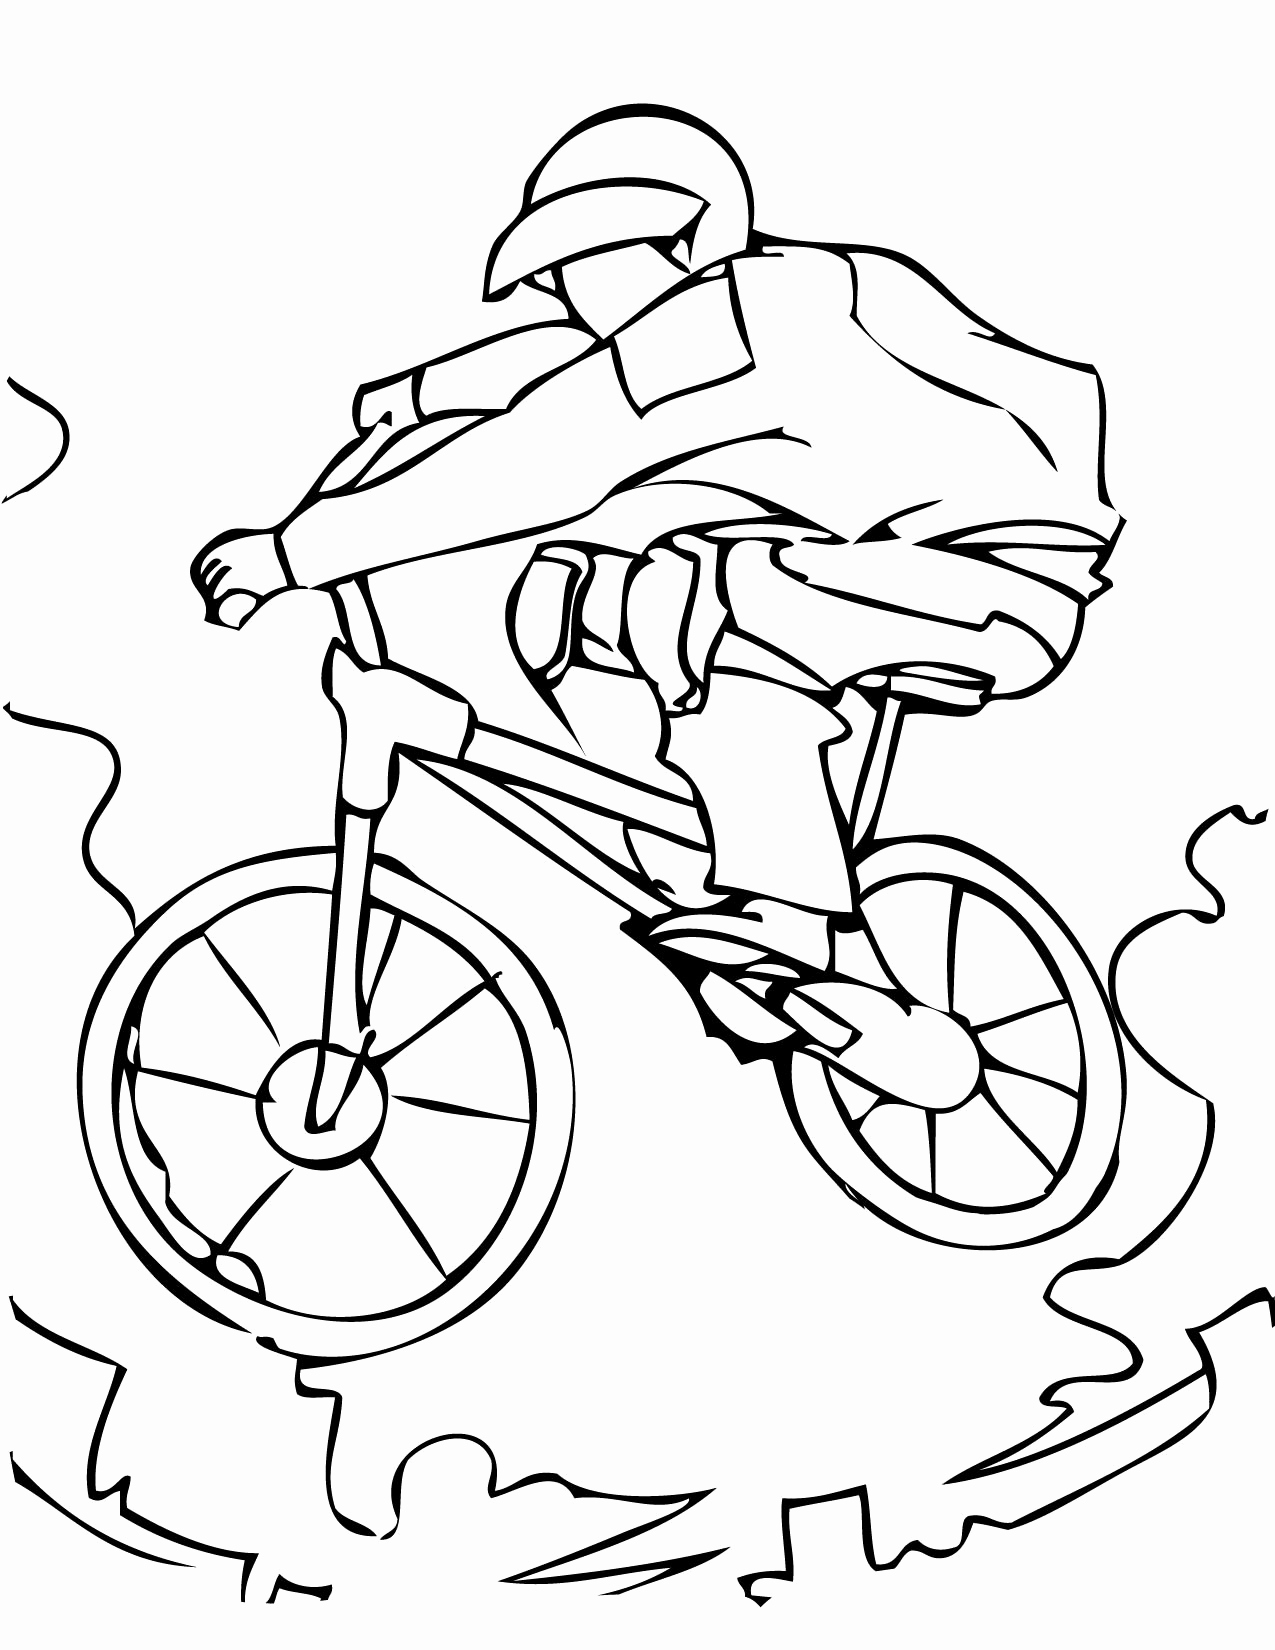 1275x1650 Unique Bicycles Coloring Pages Design Printable Coloring Sheet